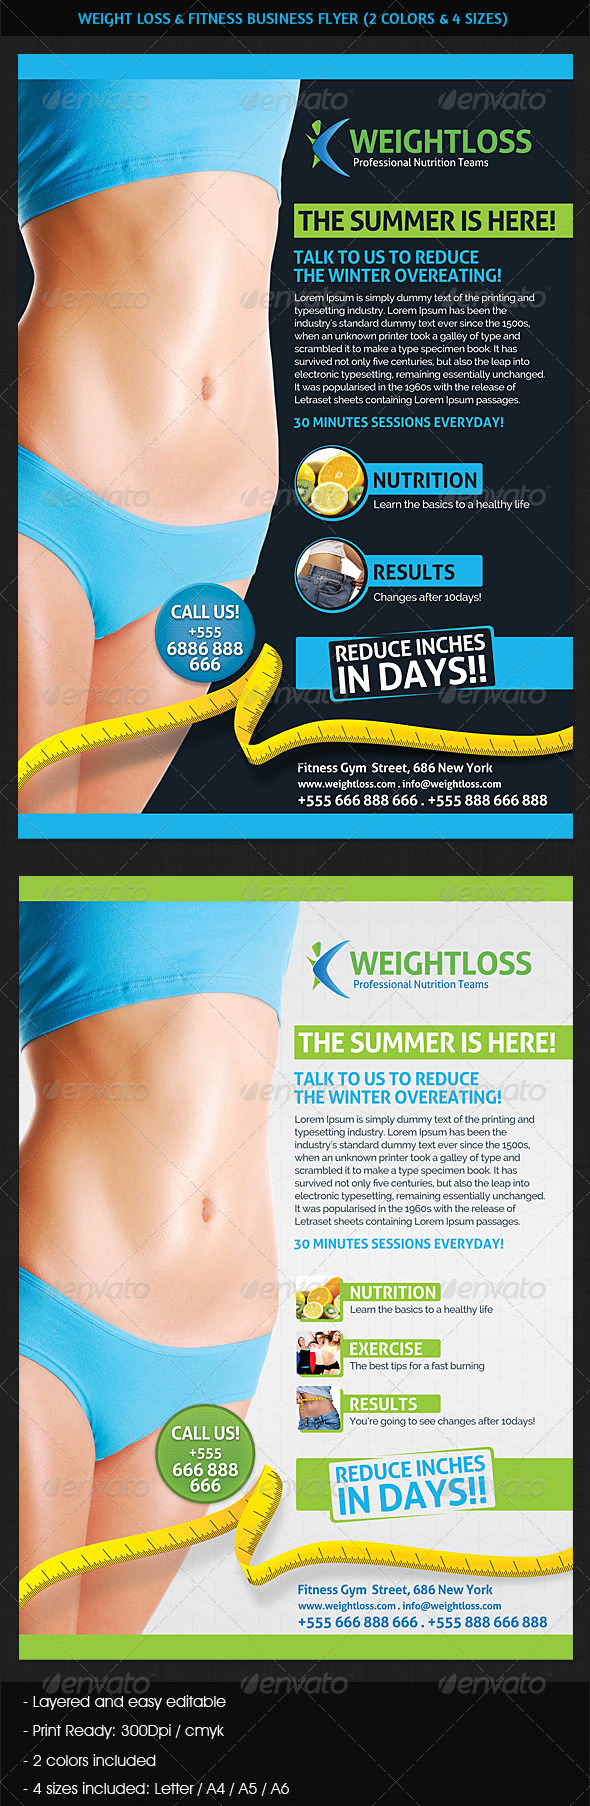 Weight Loss Fitness Business Flyer Business Flyers Business